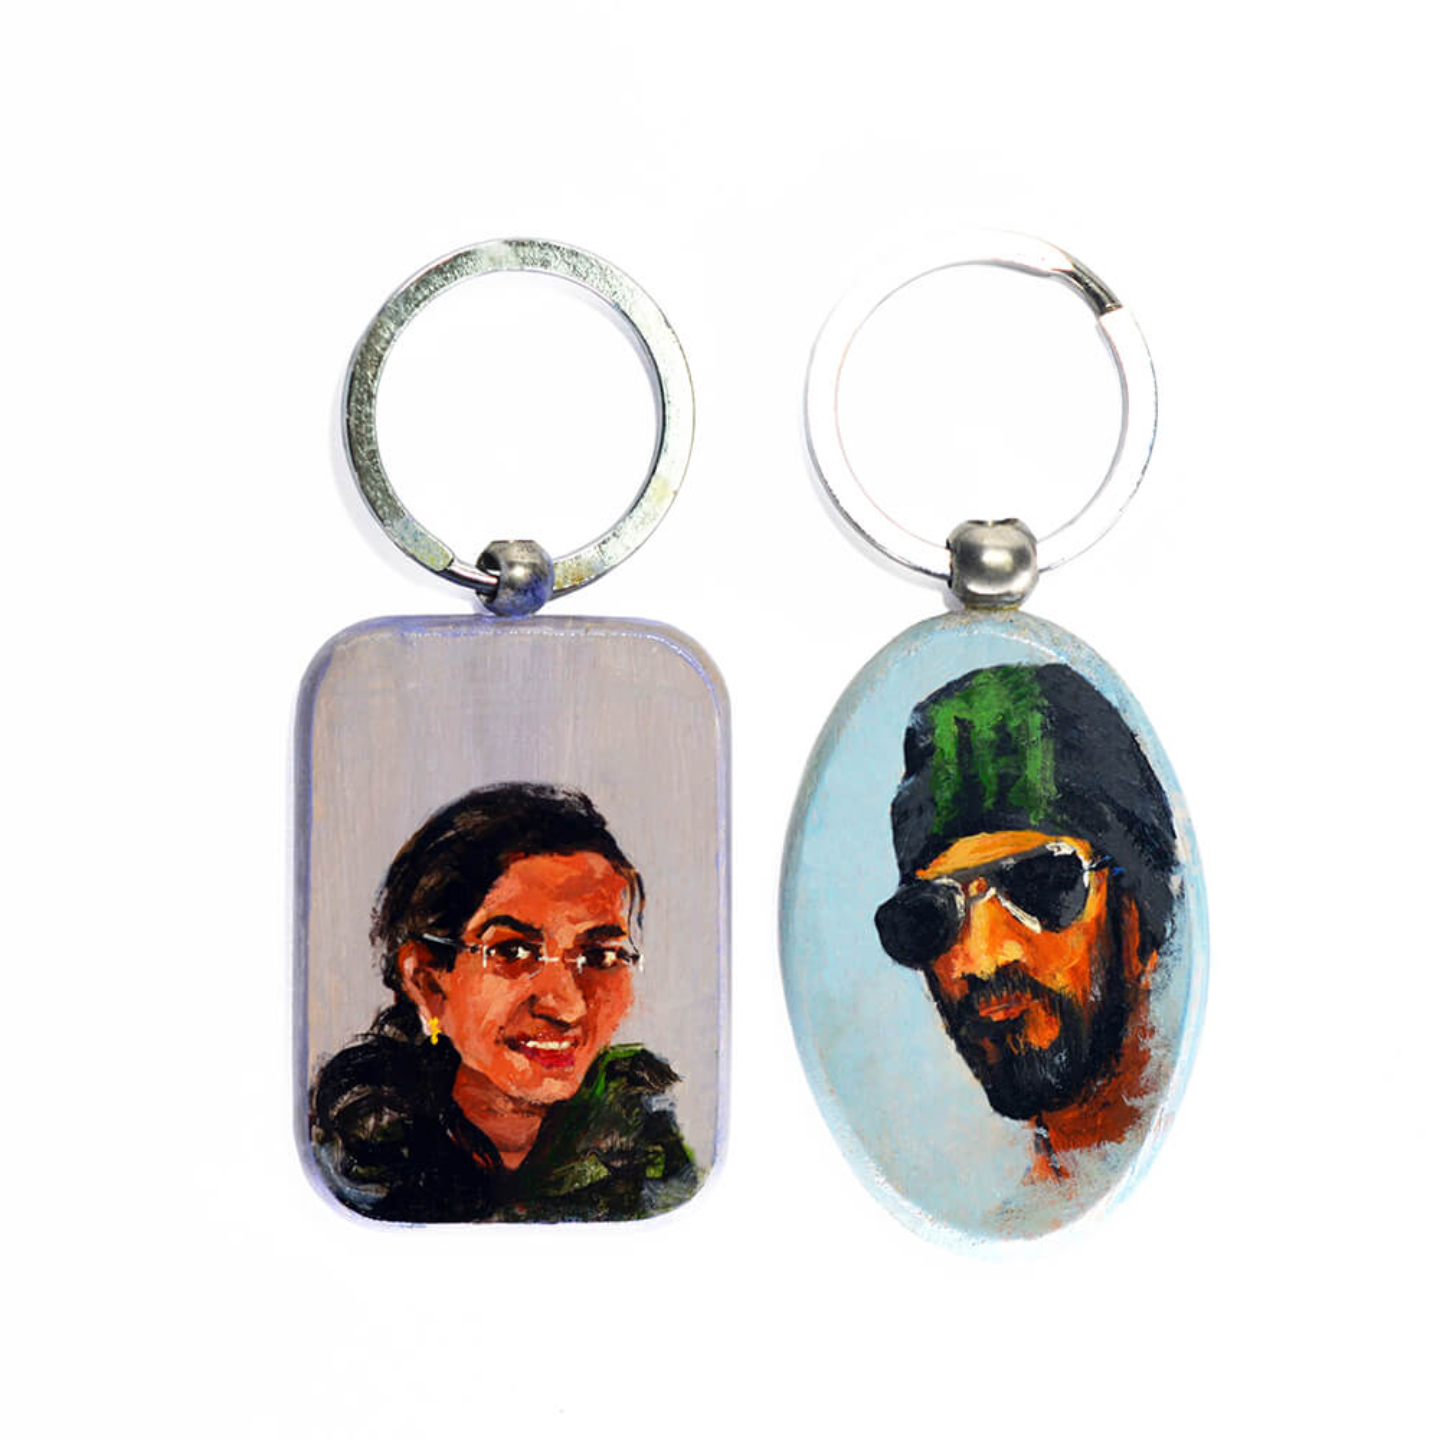 Customized portrait keychain set